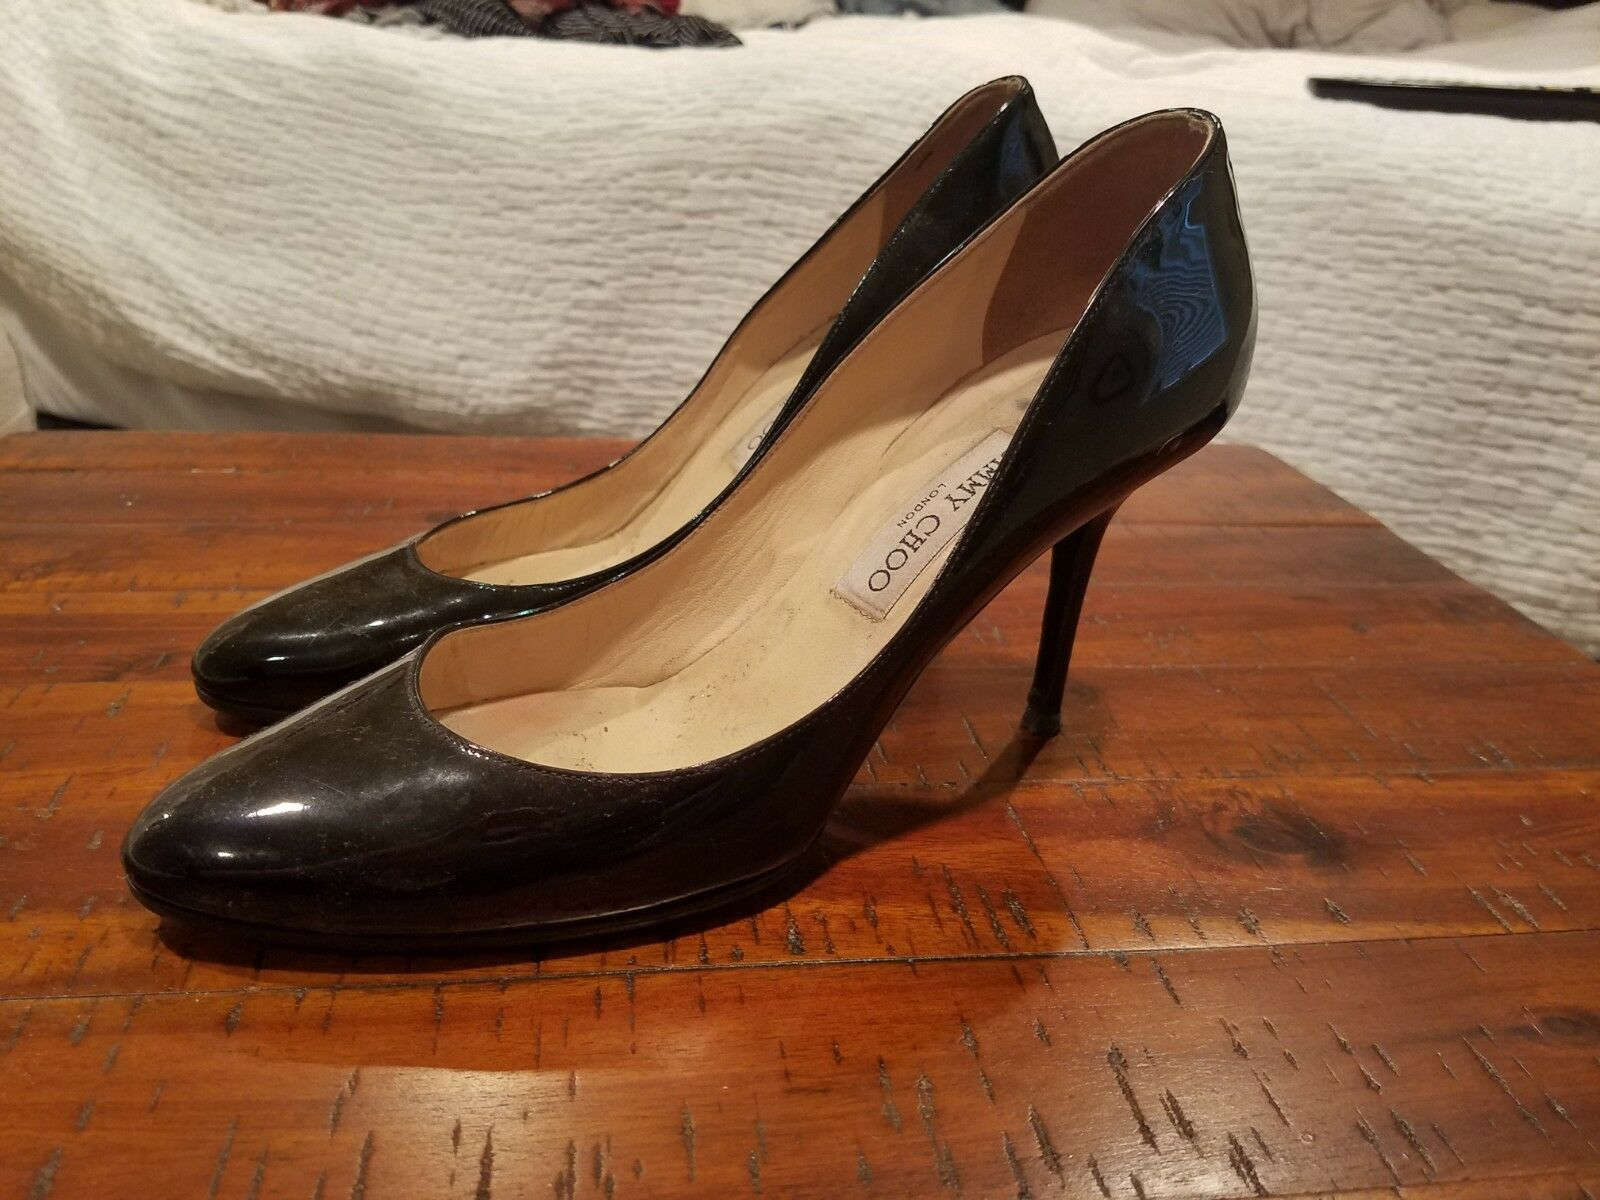 Jimmy Choo designer pump, classic black patent leather curved toe